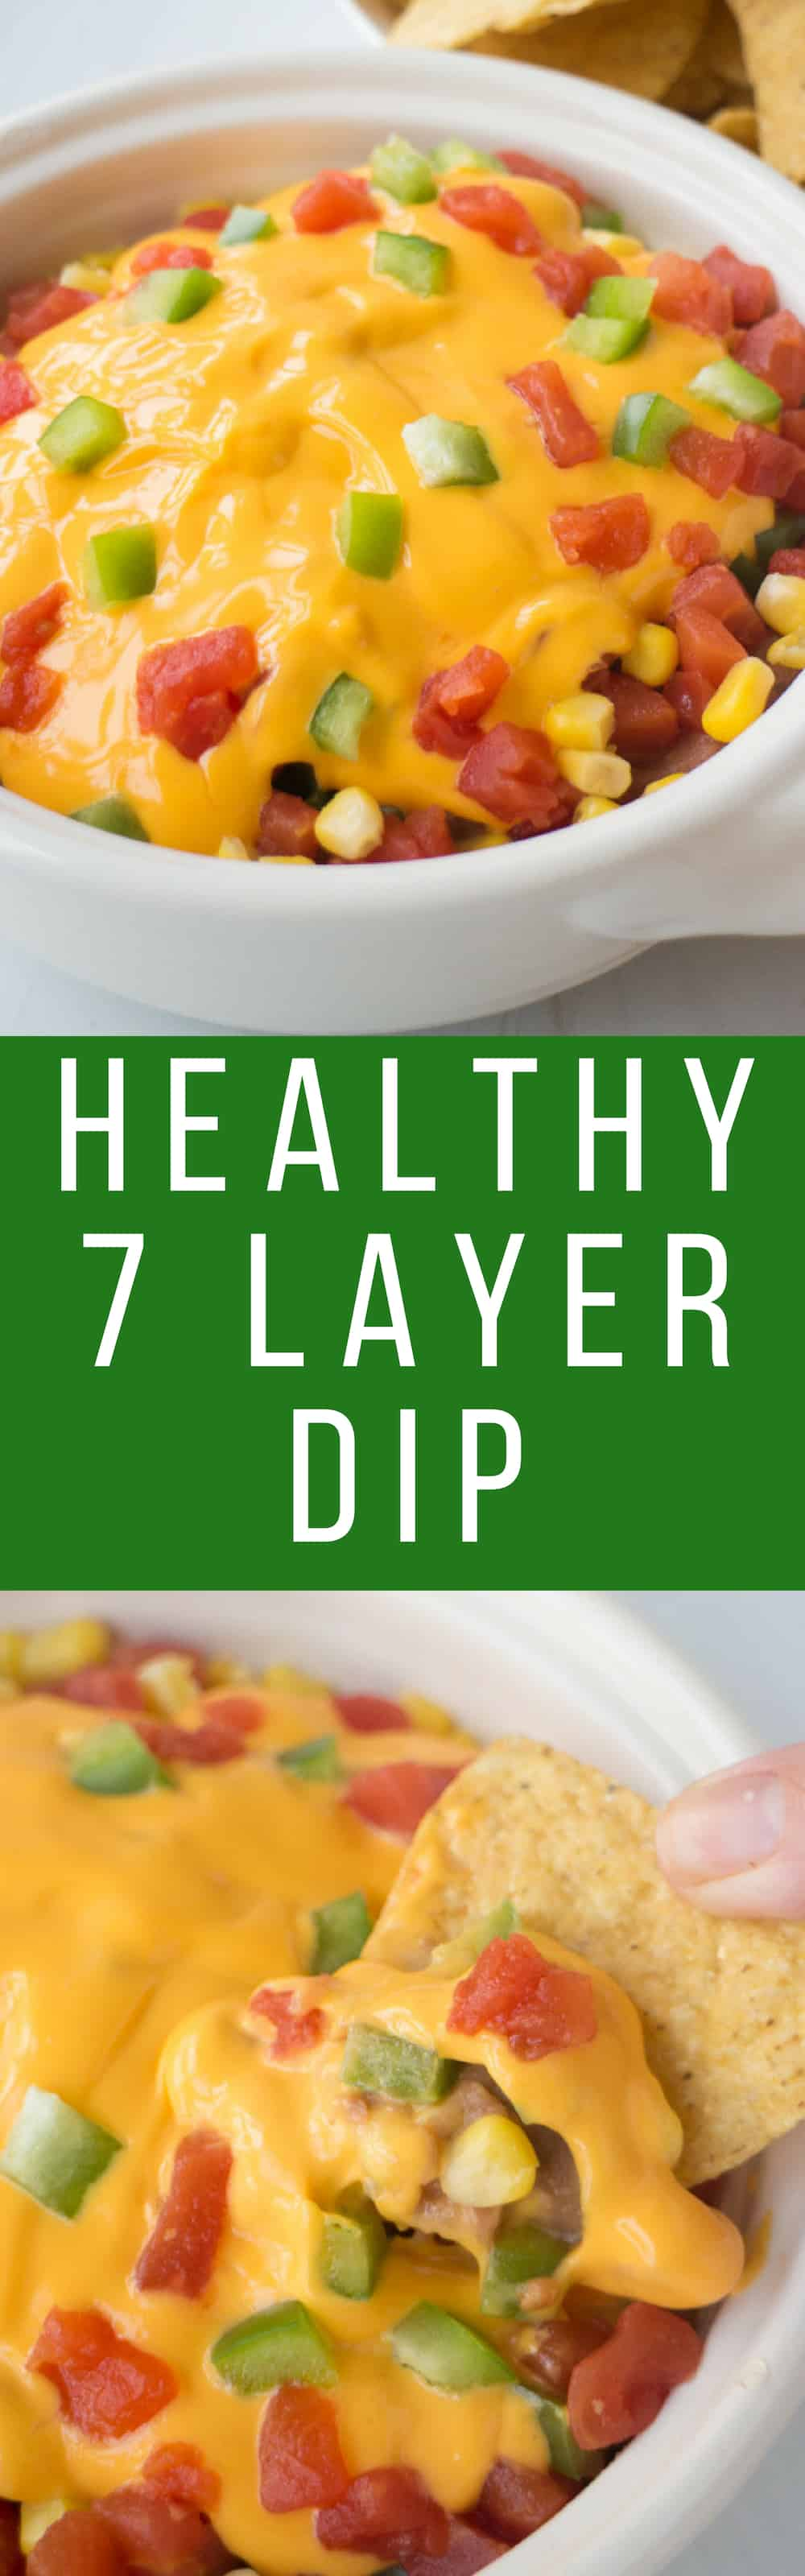 HEALTHY 7 Layer Taco Dip is easy to make with tomatoes, corn, lettuce, pinto refried beans, green pepper, and cheese! Ready in 10 minutes! This Mexican dip is made without cream cheese and ground beef! Serve hot or cold!